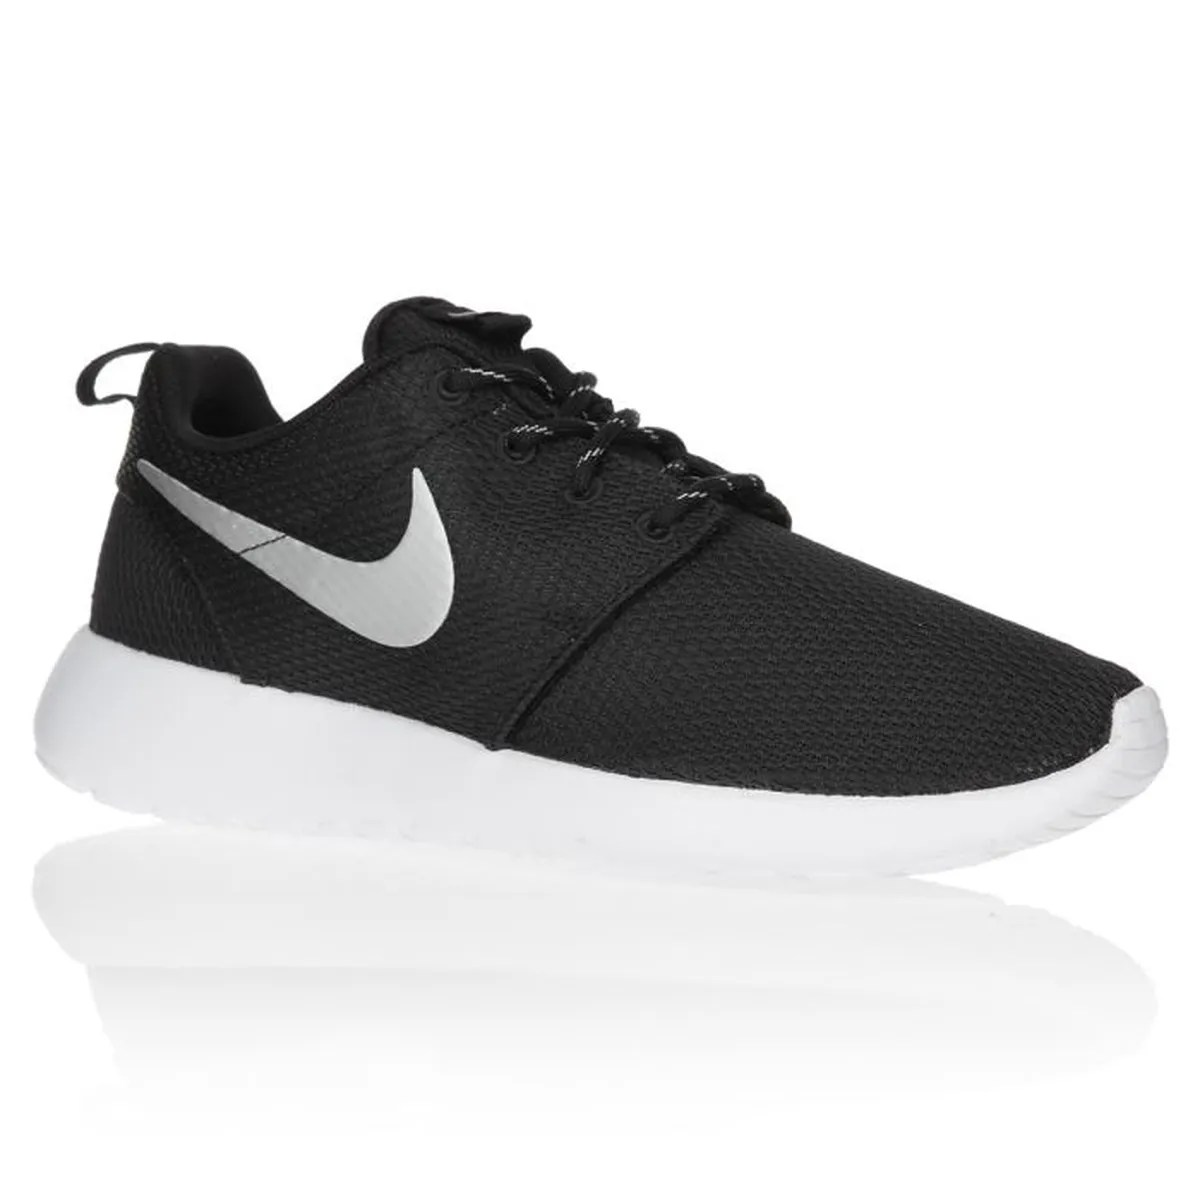 Chaussured Chaussure Femme Basket Nike